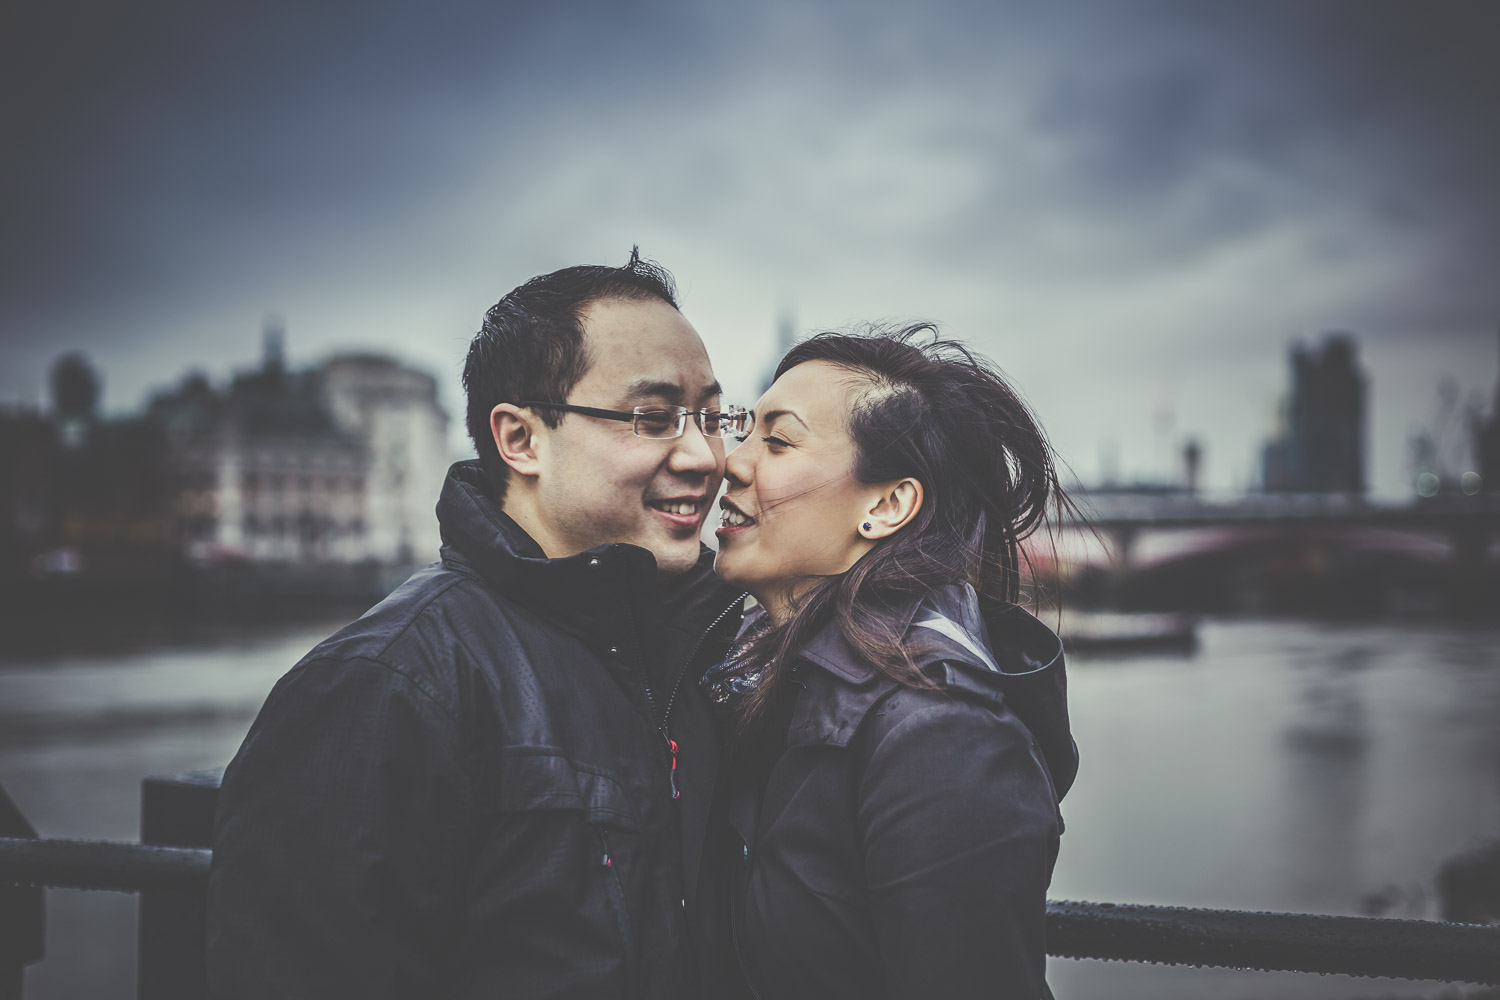 pre-wedding-engagement-session-in-london-portchester-and-notting-hill-hampshire-wedding-photographer-50.jpg